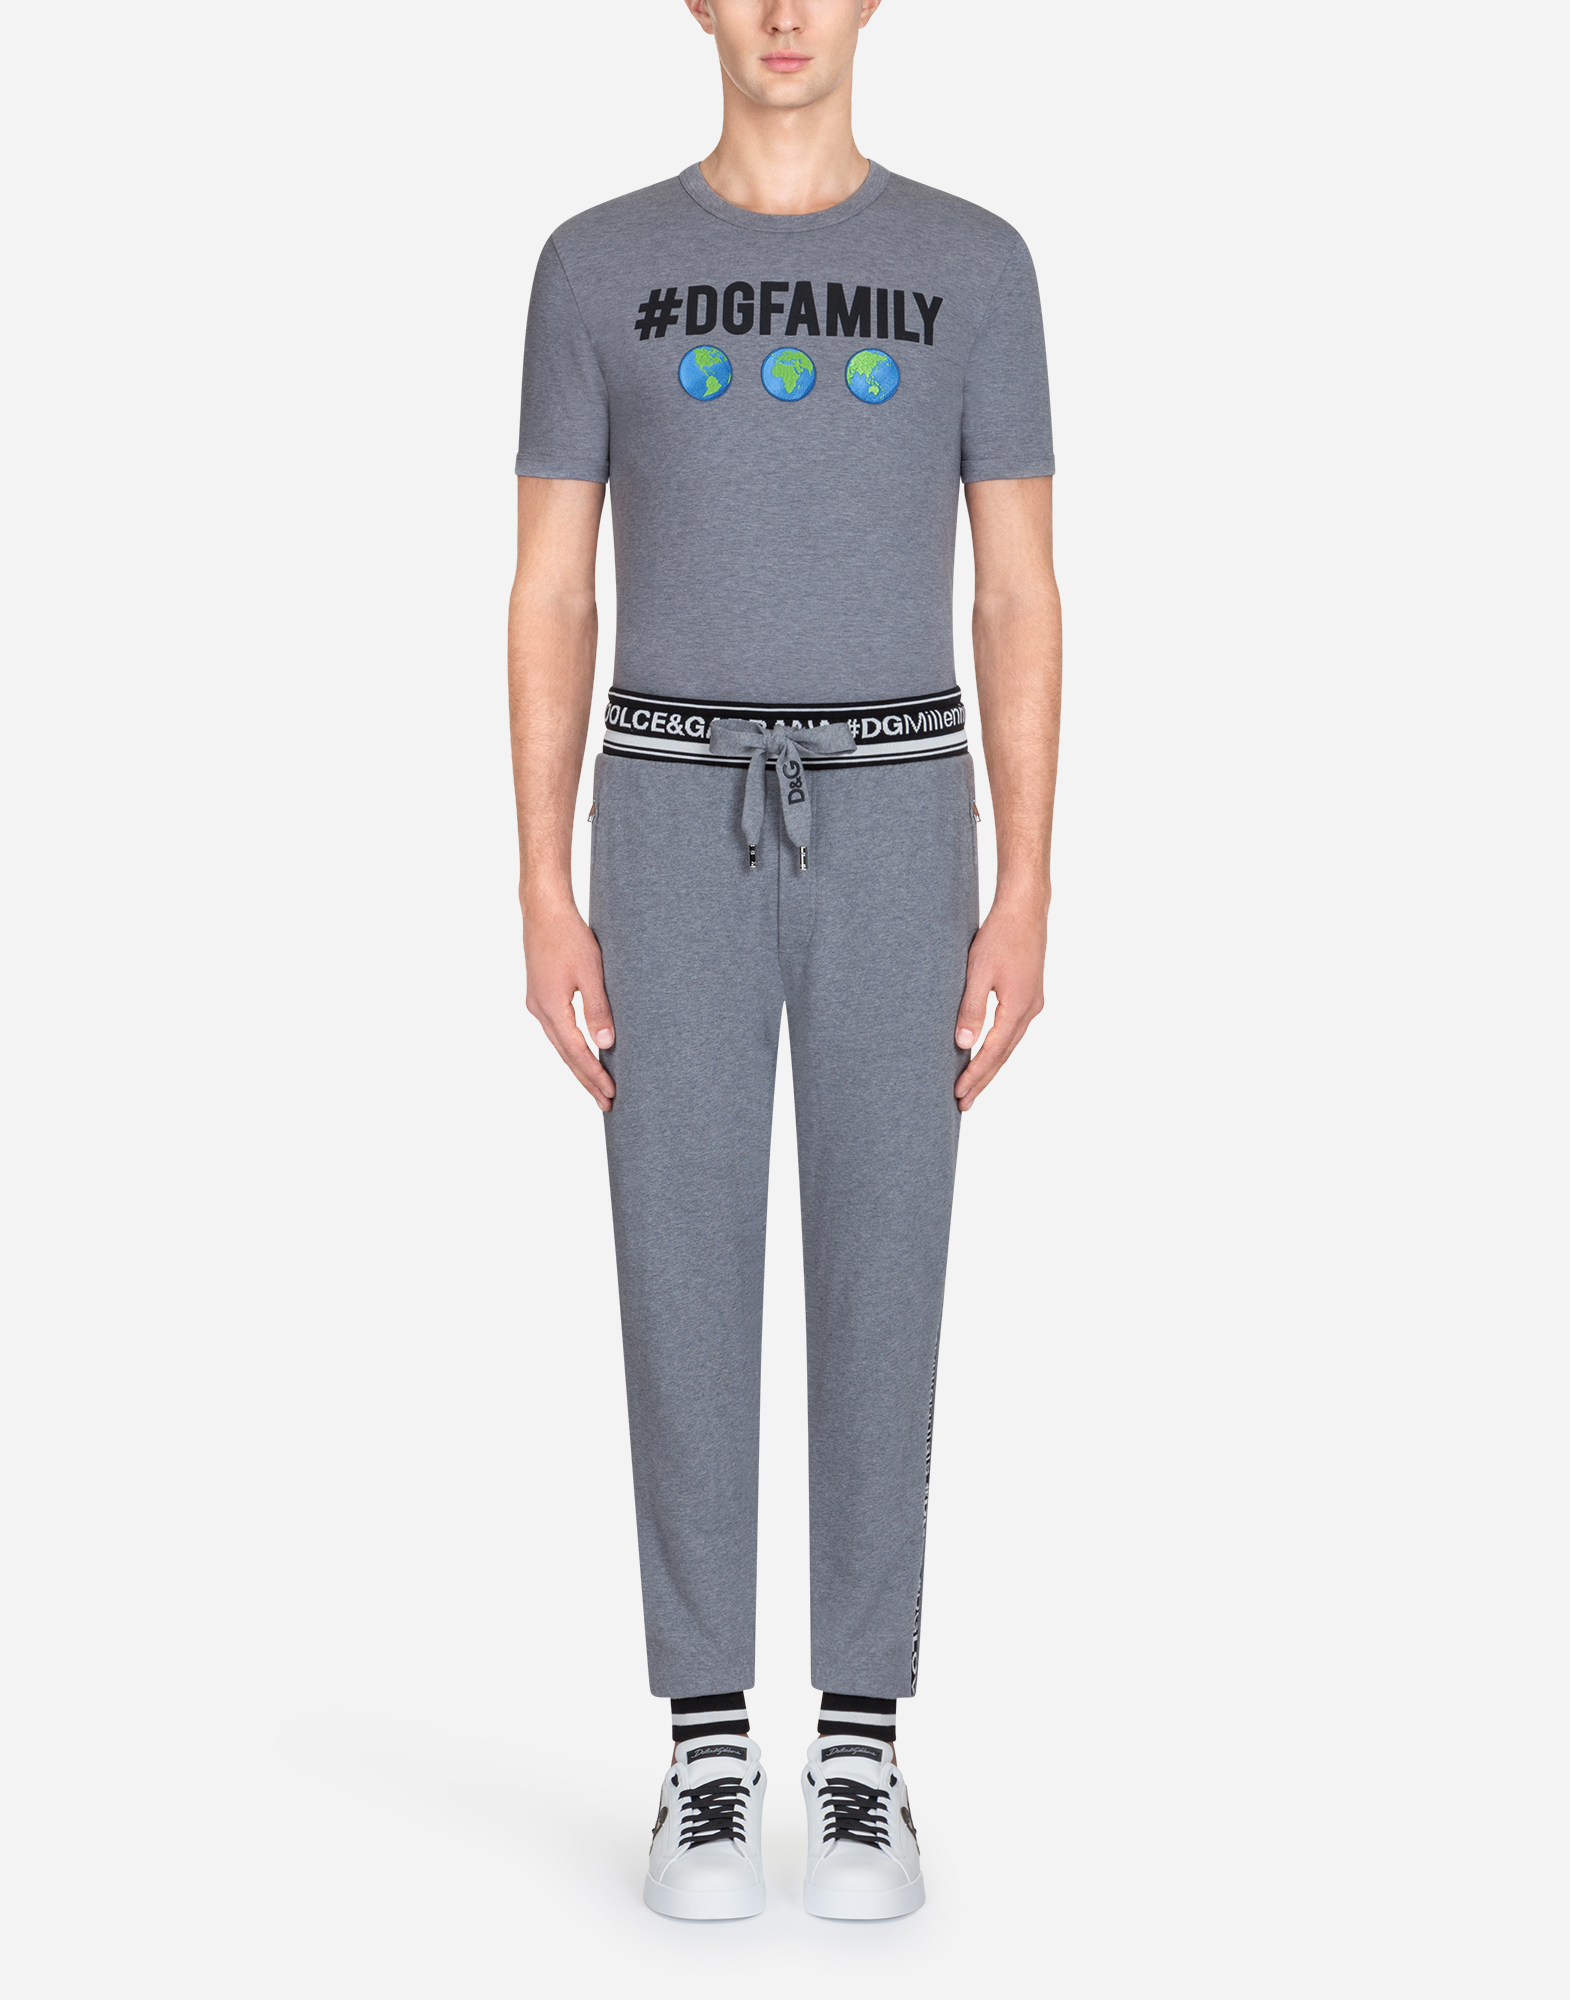 Dolce & Gabbana JOGGING PANTS IN #DGFAMILY PRINTED COTTON AND PATCH